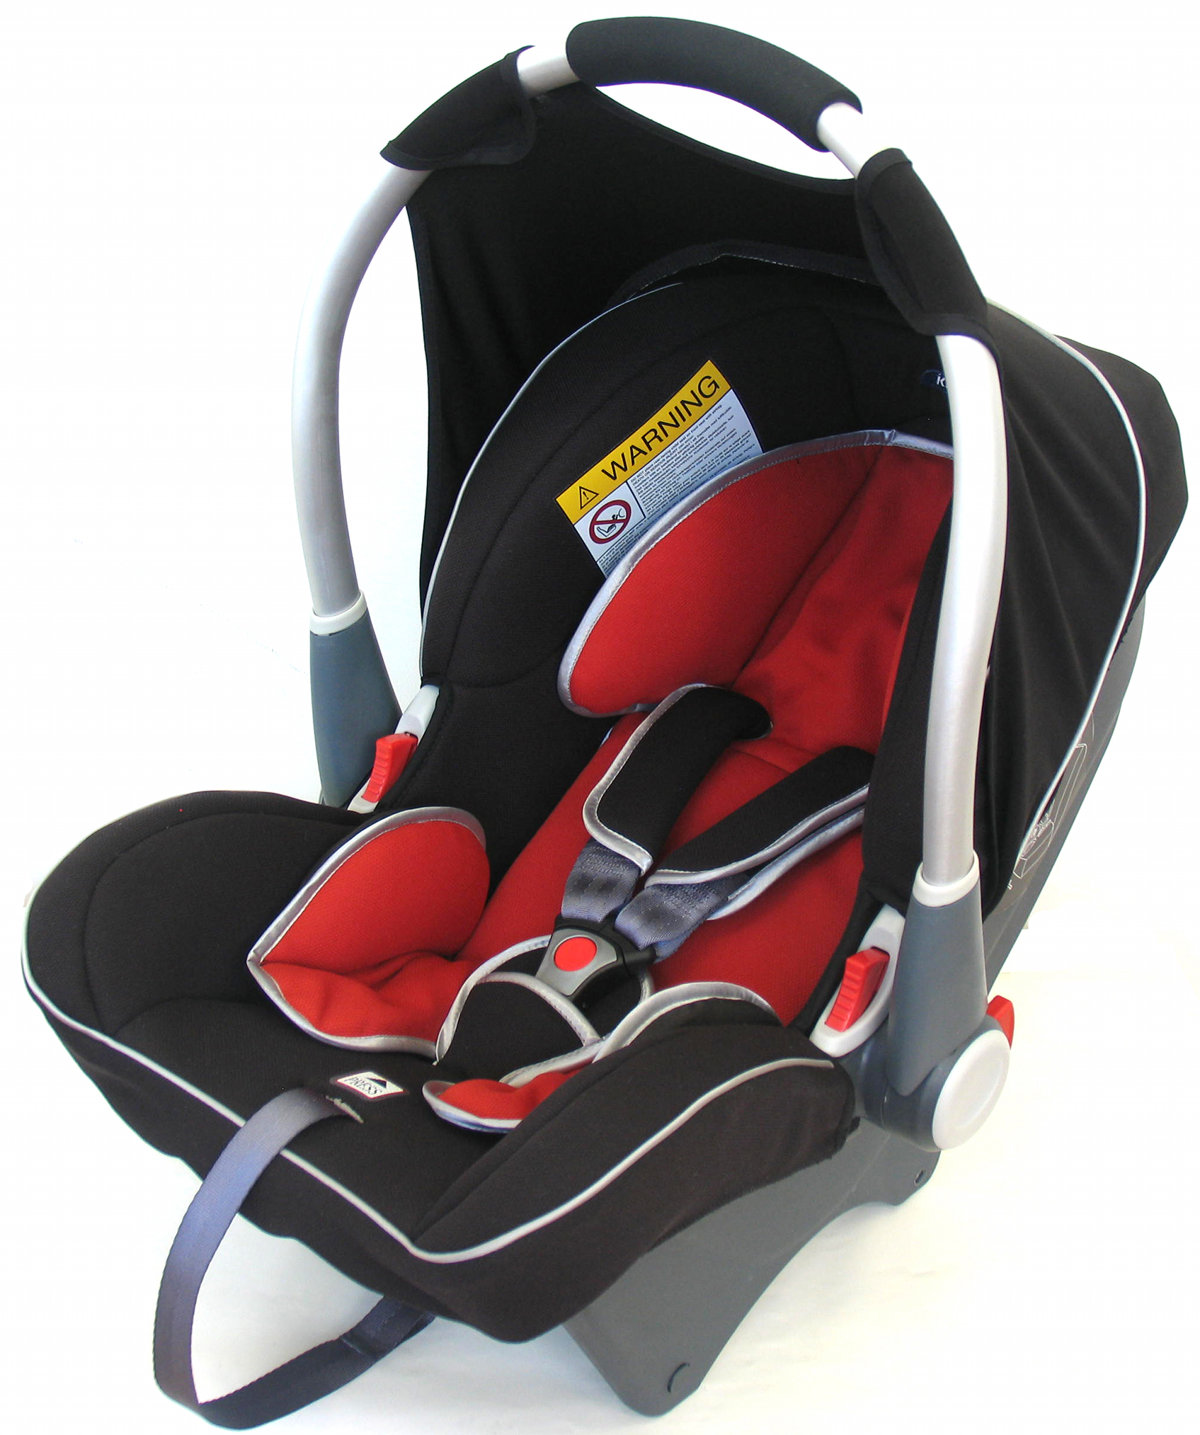 Klippan Dinofix - Black-DarkRed